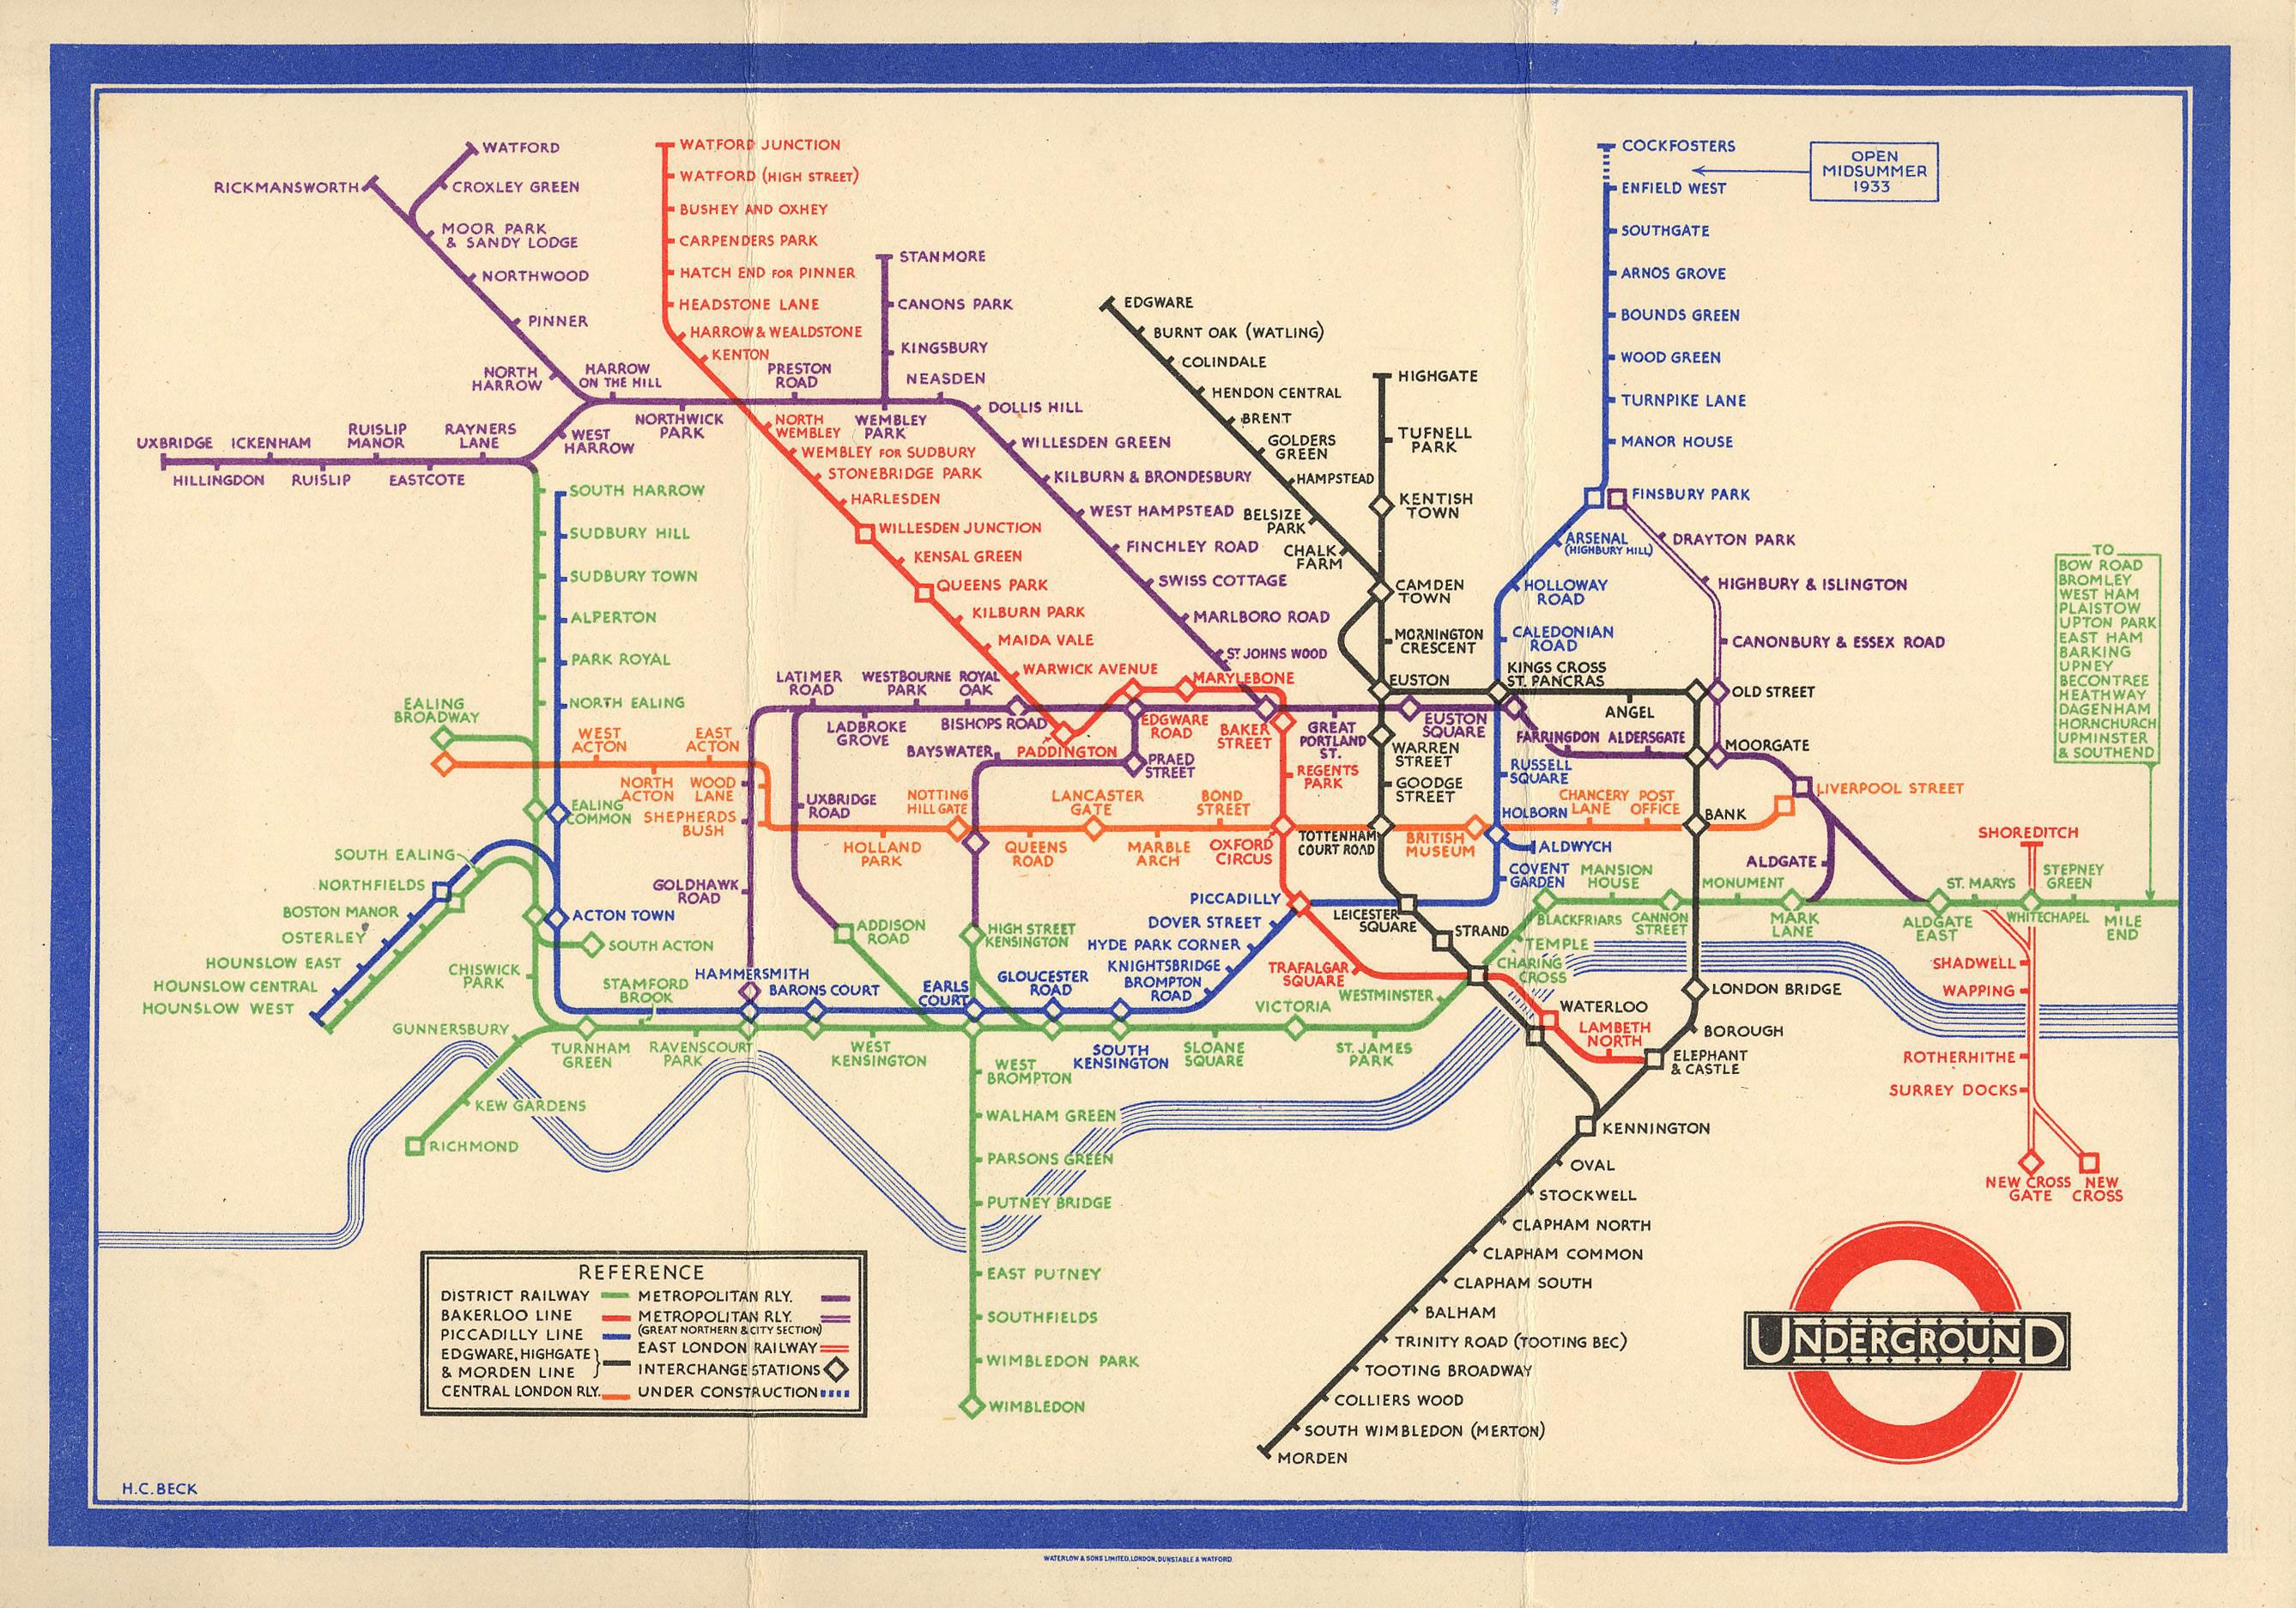 design classic honoured tube map creator given blue plaque